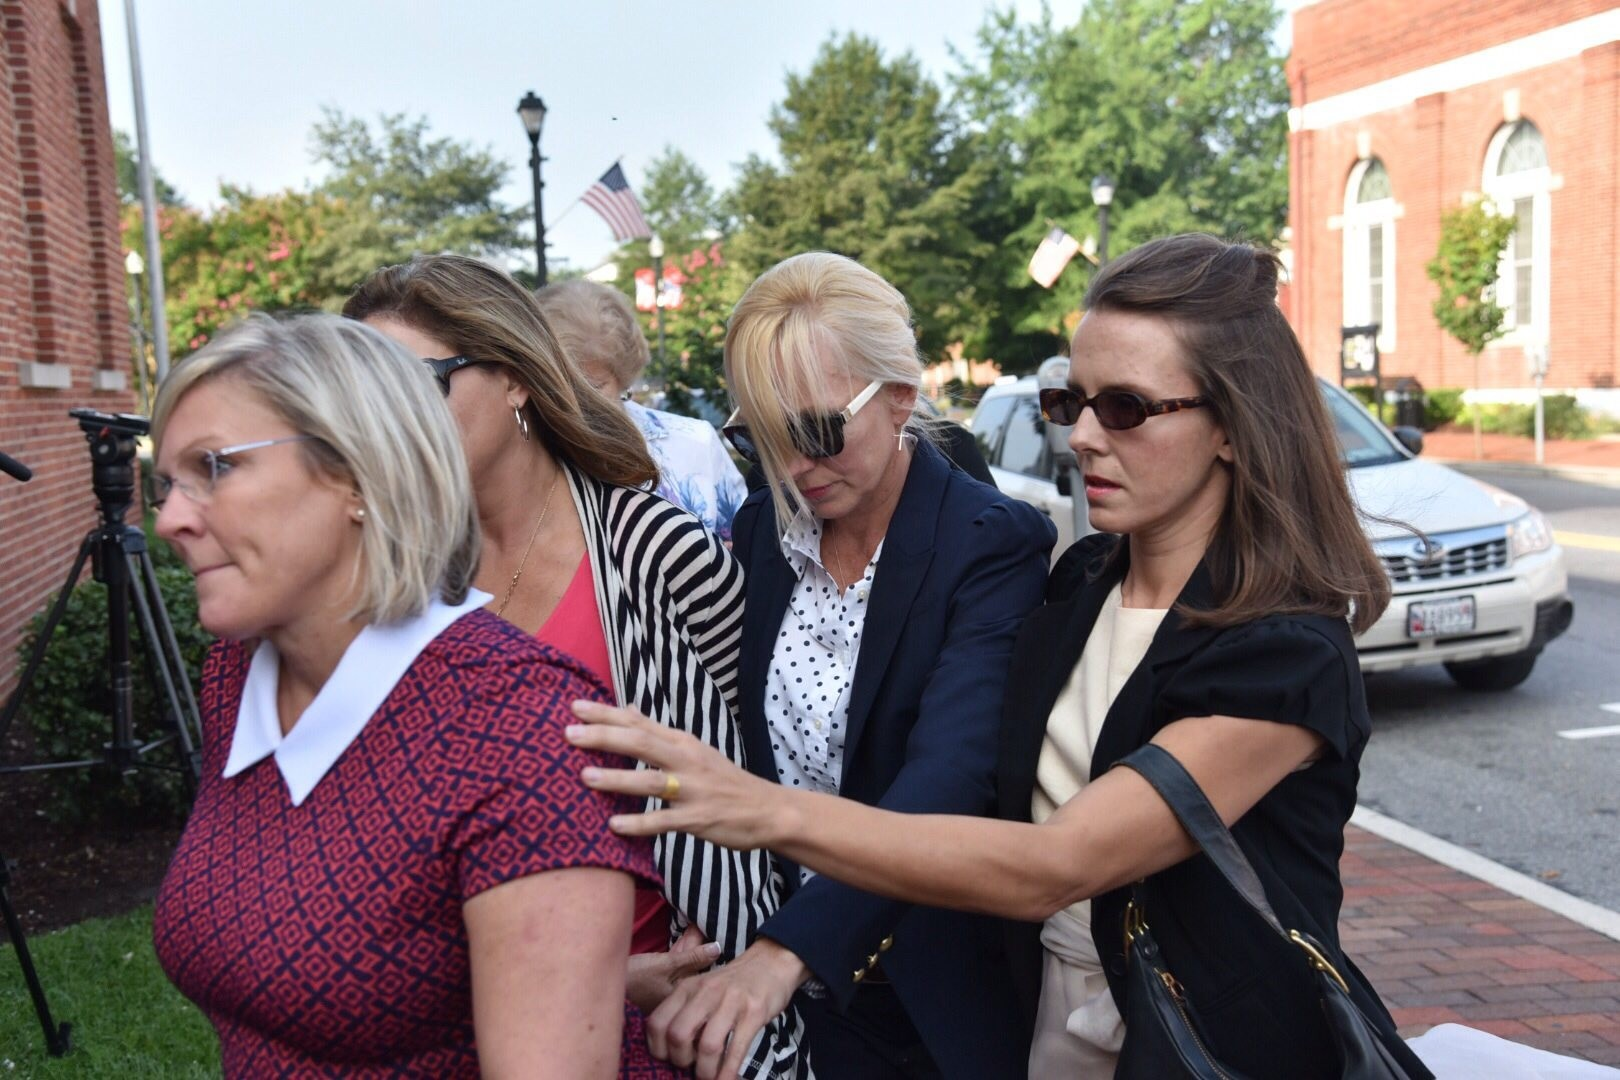 Former Ravens Cheerleader Molly Shattuck Collapses At Her Sentencing For Raping Boy 15 Syracuse Com